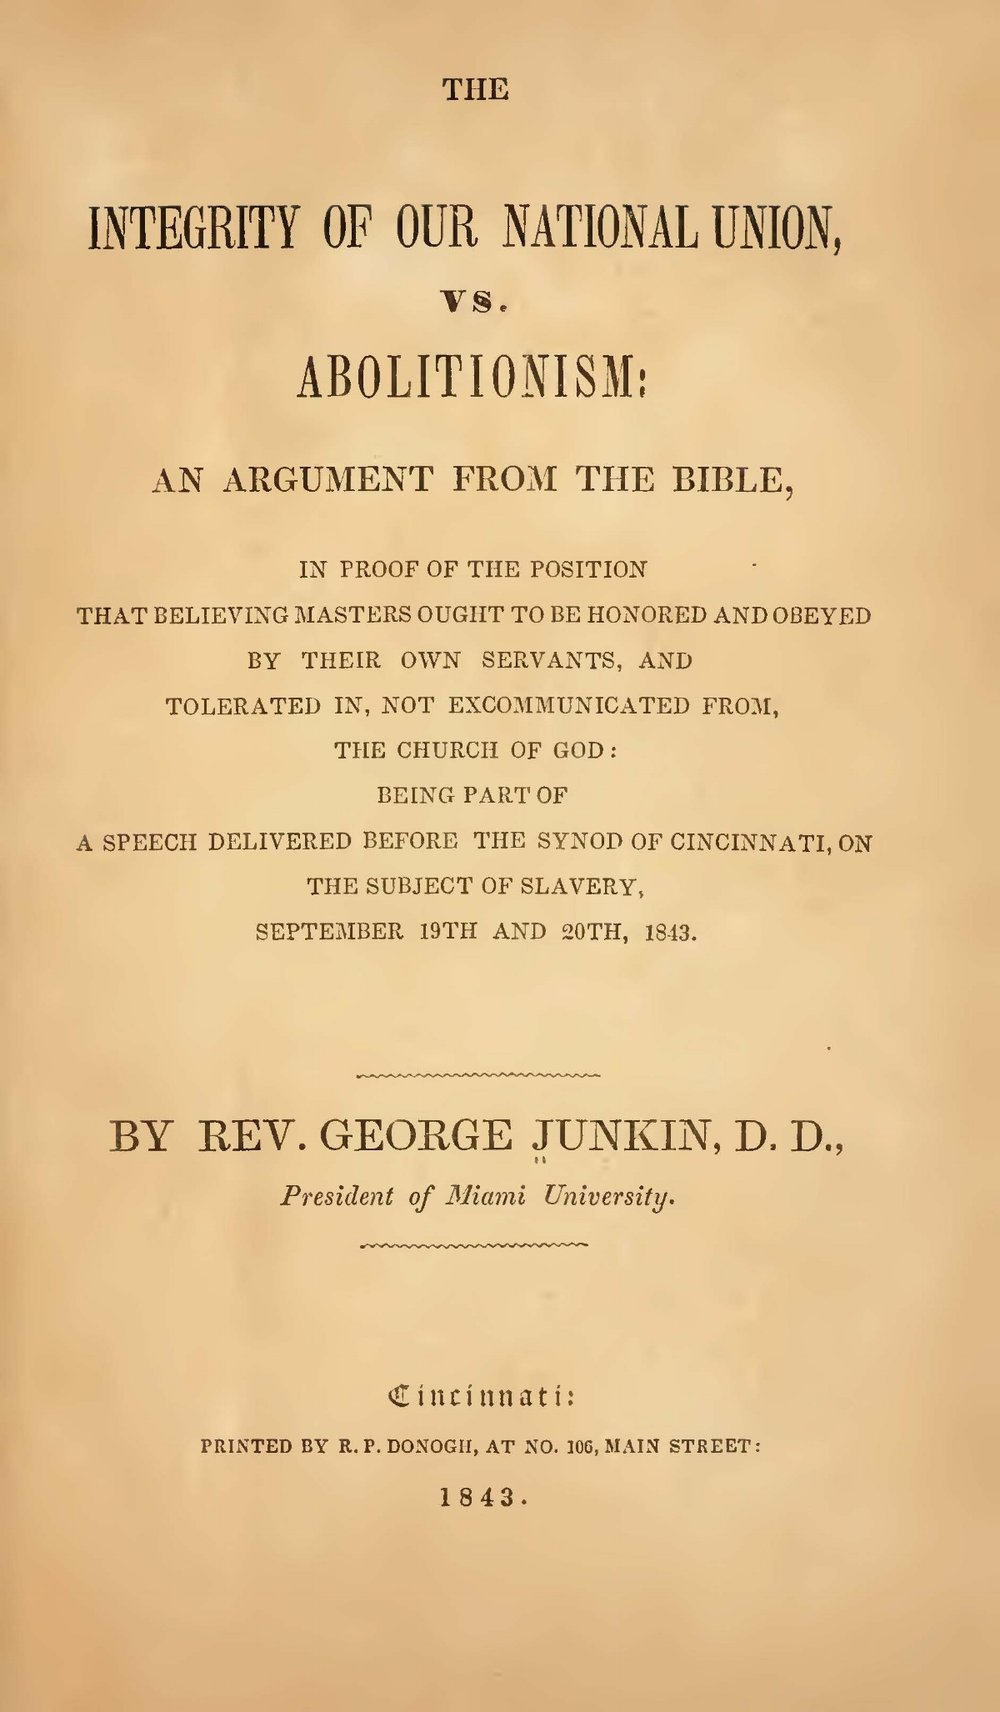 Junkin, George, The Integrity of Our National Union vs Abolitionism Title Page.jpg